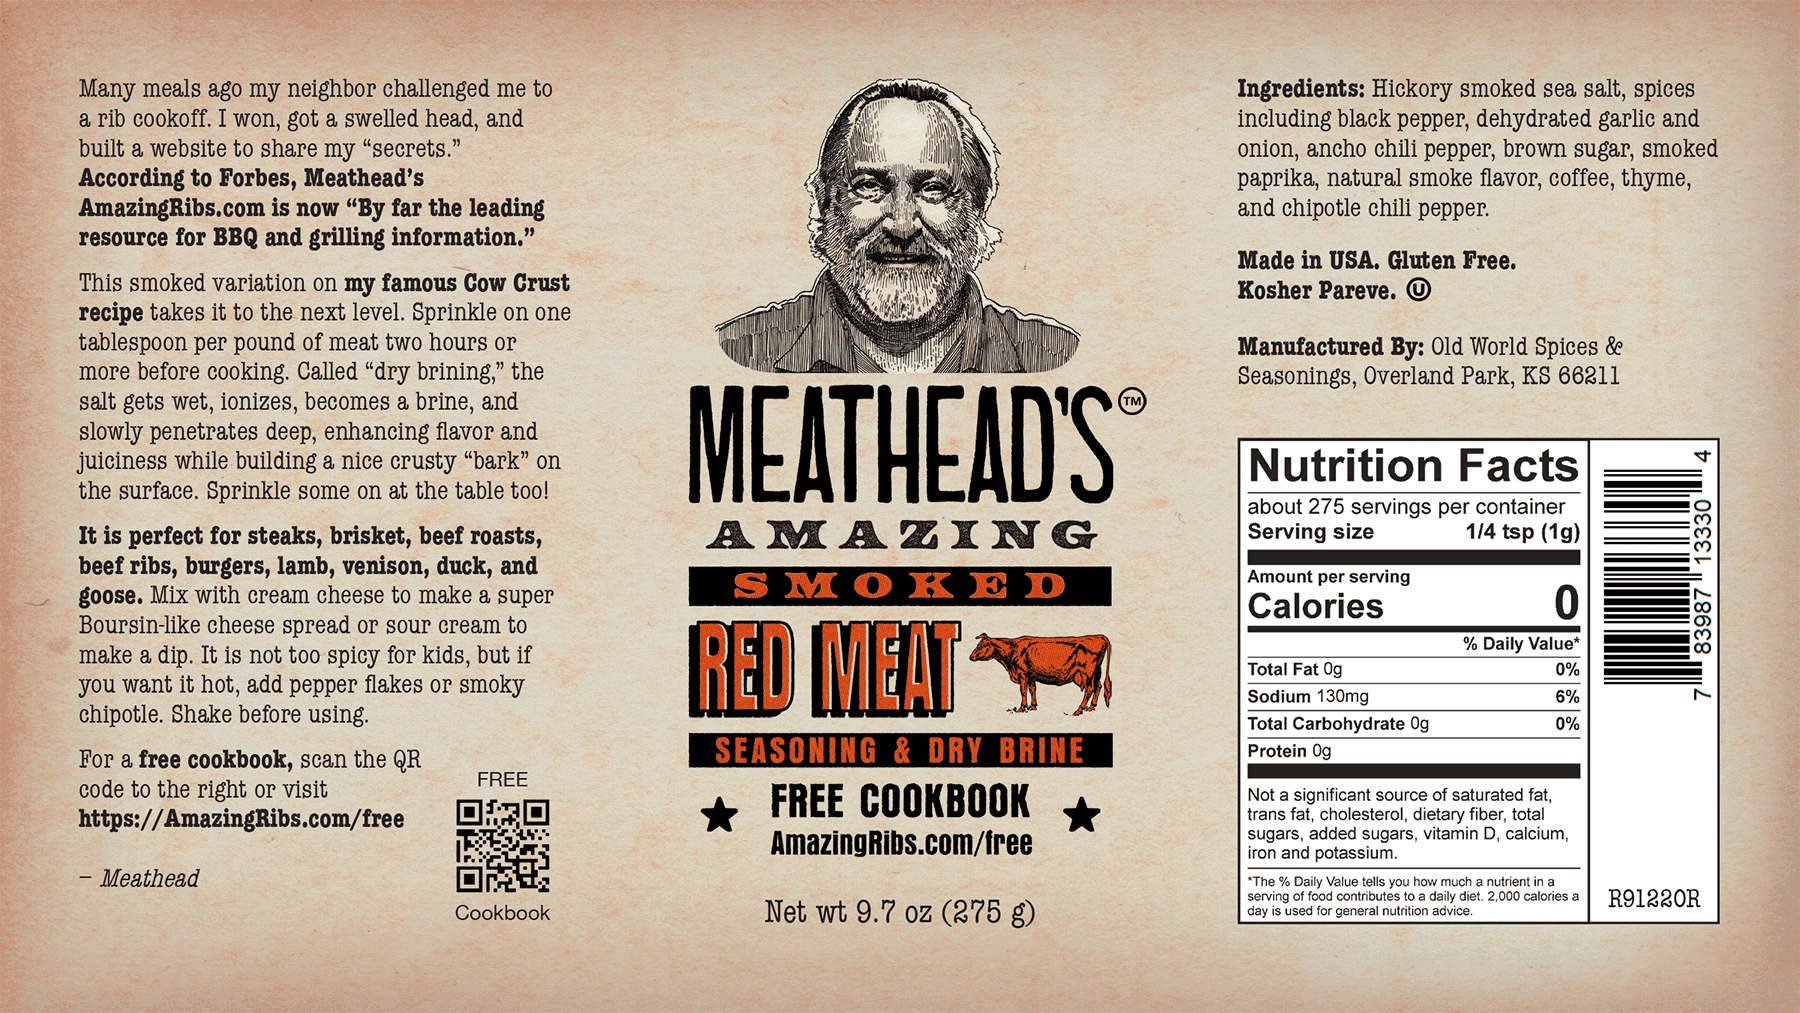 Meathead's Amazing Smoked Red Meat Seasoning and Brine